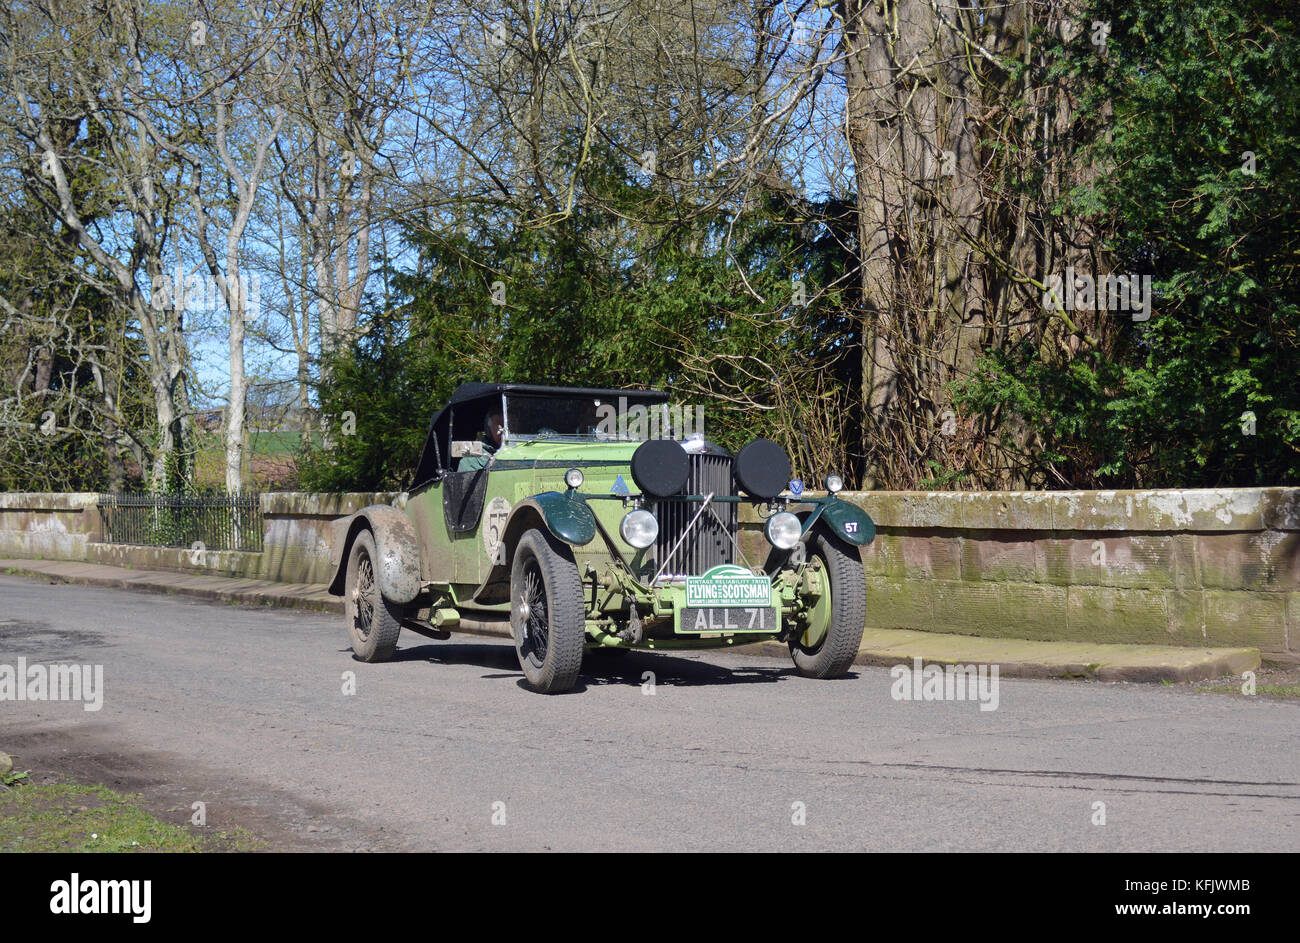 Flying Scotsman 2016-1933 Talbot av 105 super laufen Stockbild